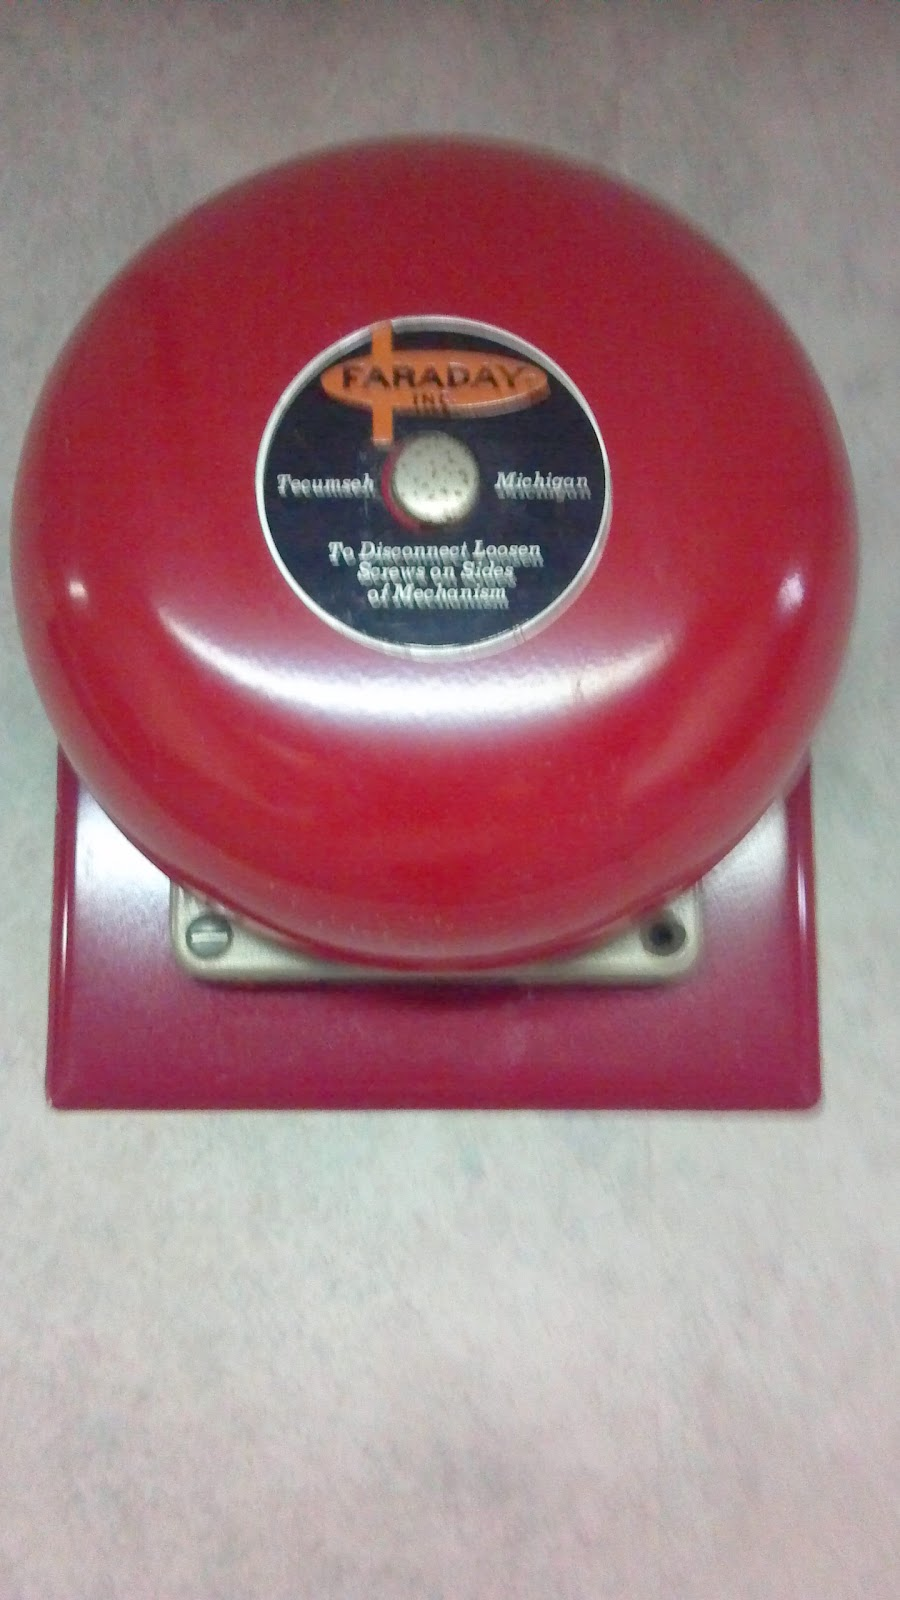 Nick S Fire Electrical Safety Amp Security Blog Is It